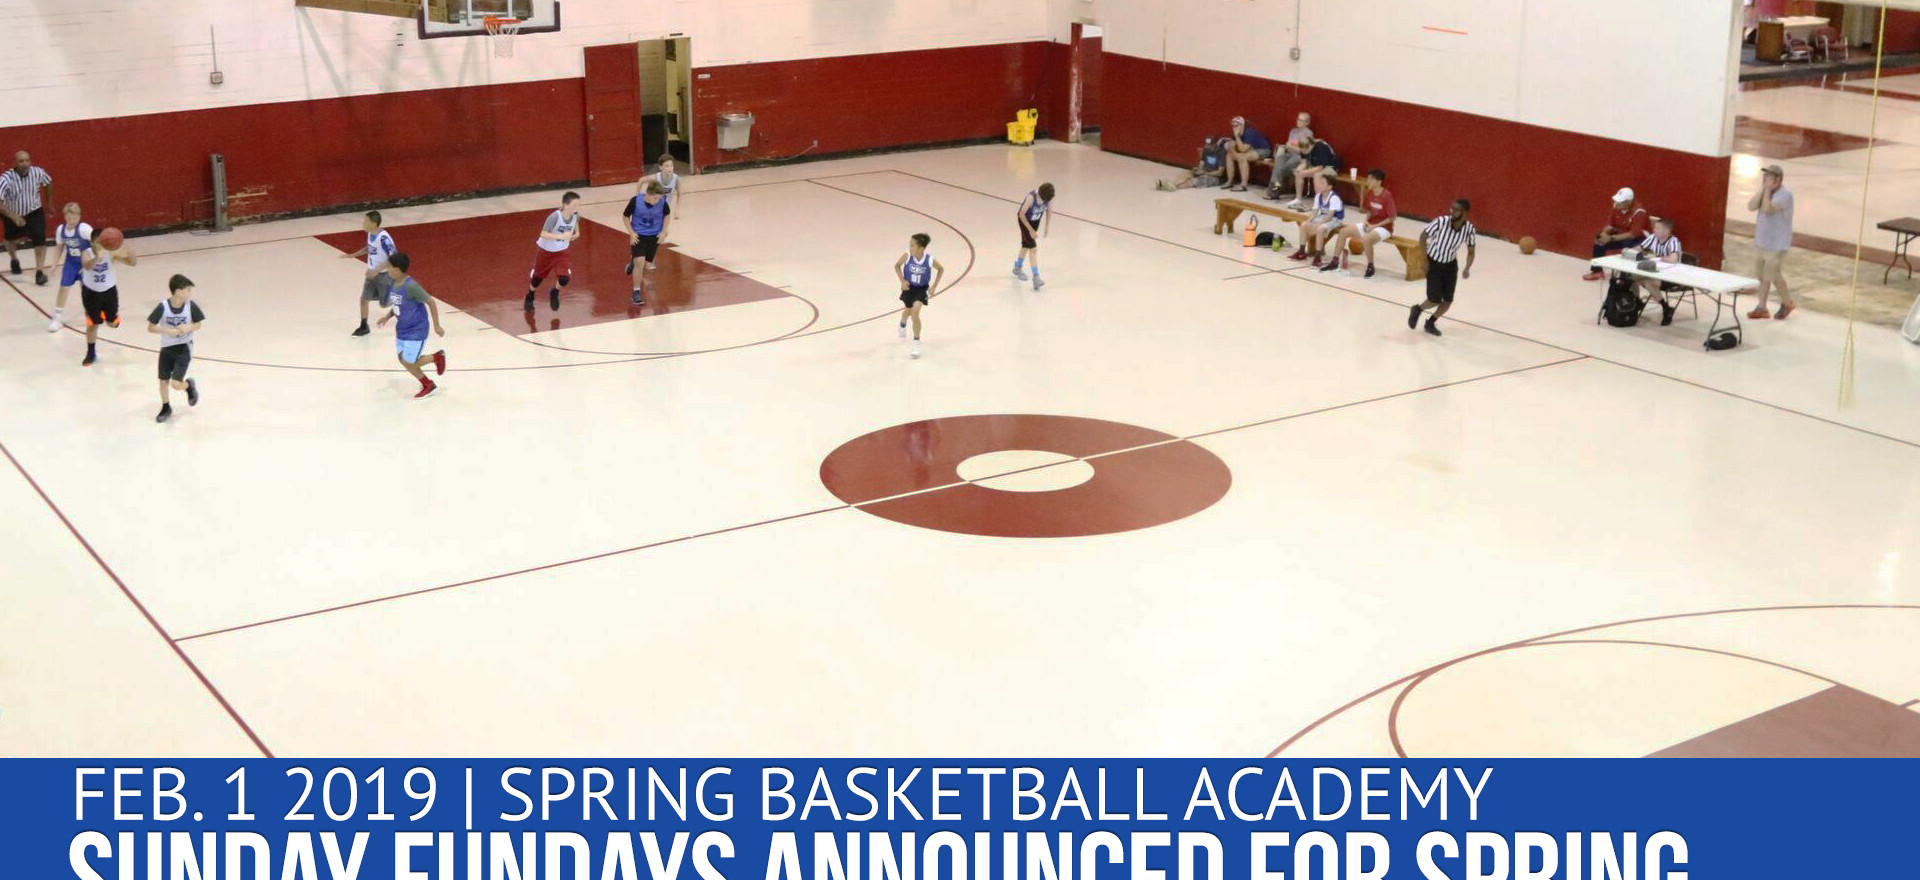 Spring Basketball Academy - Sunday Funda